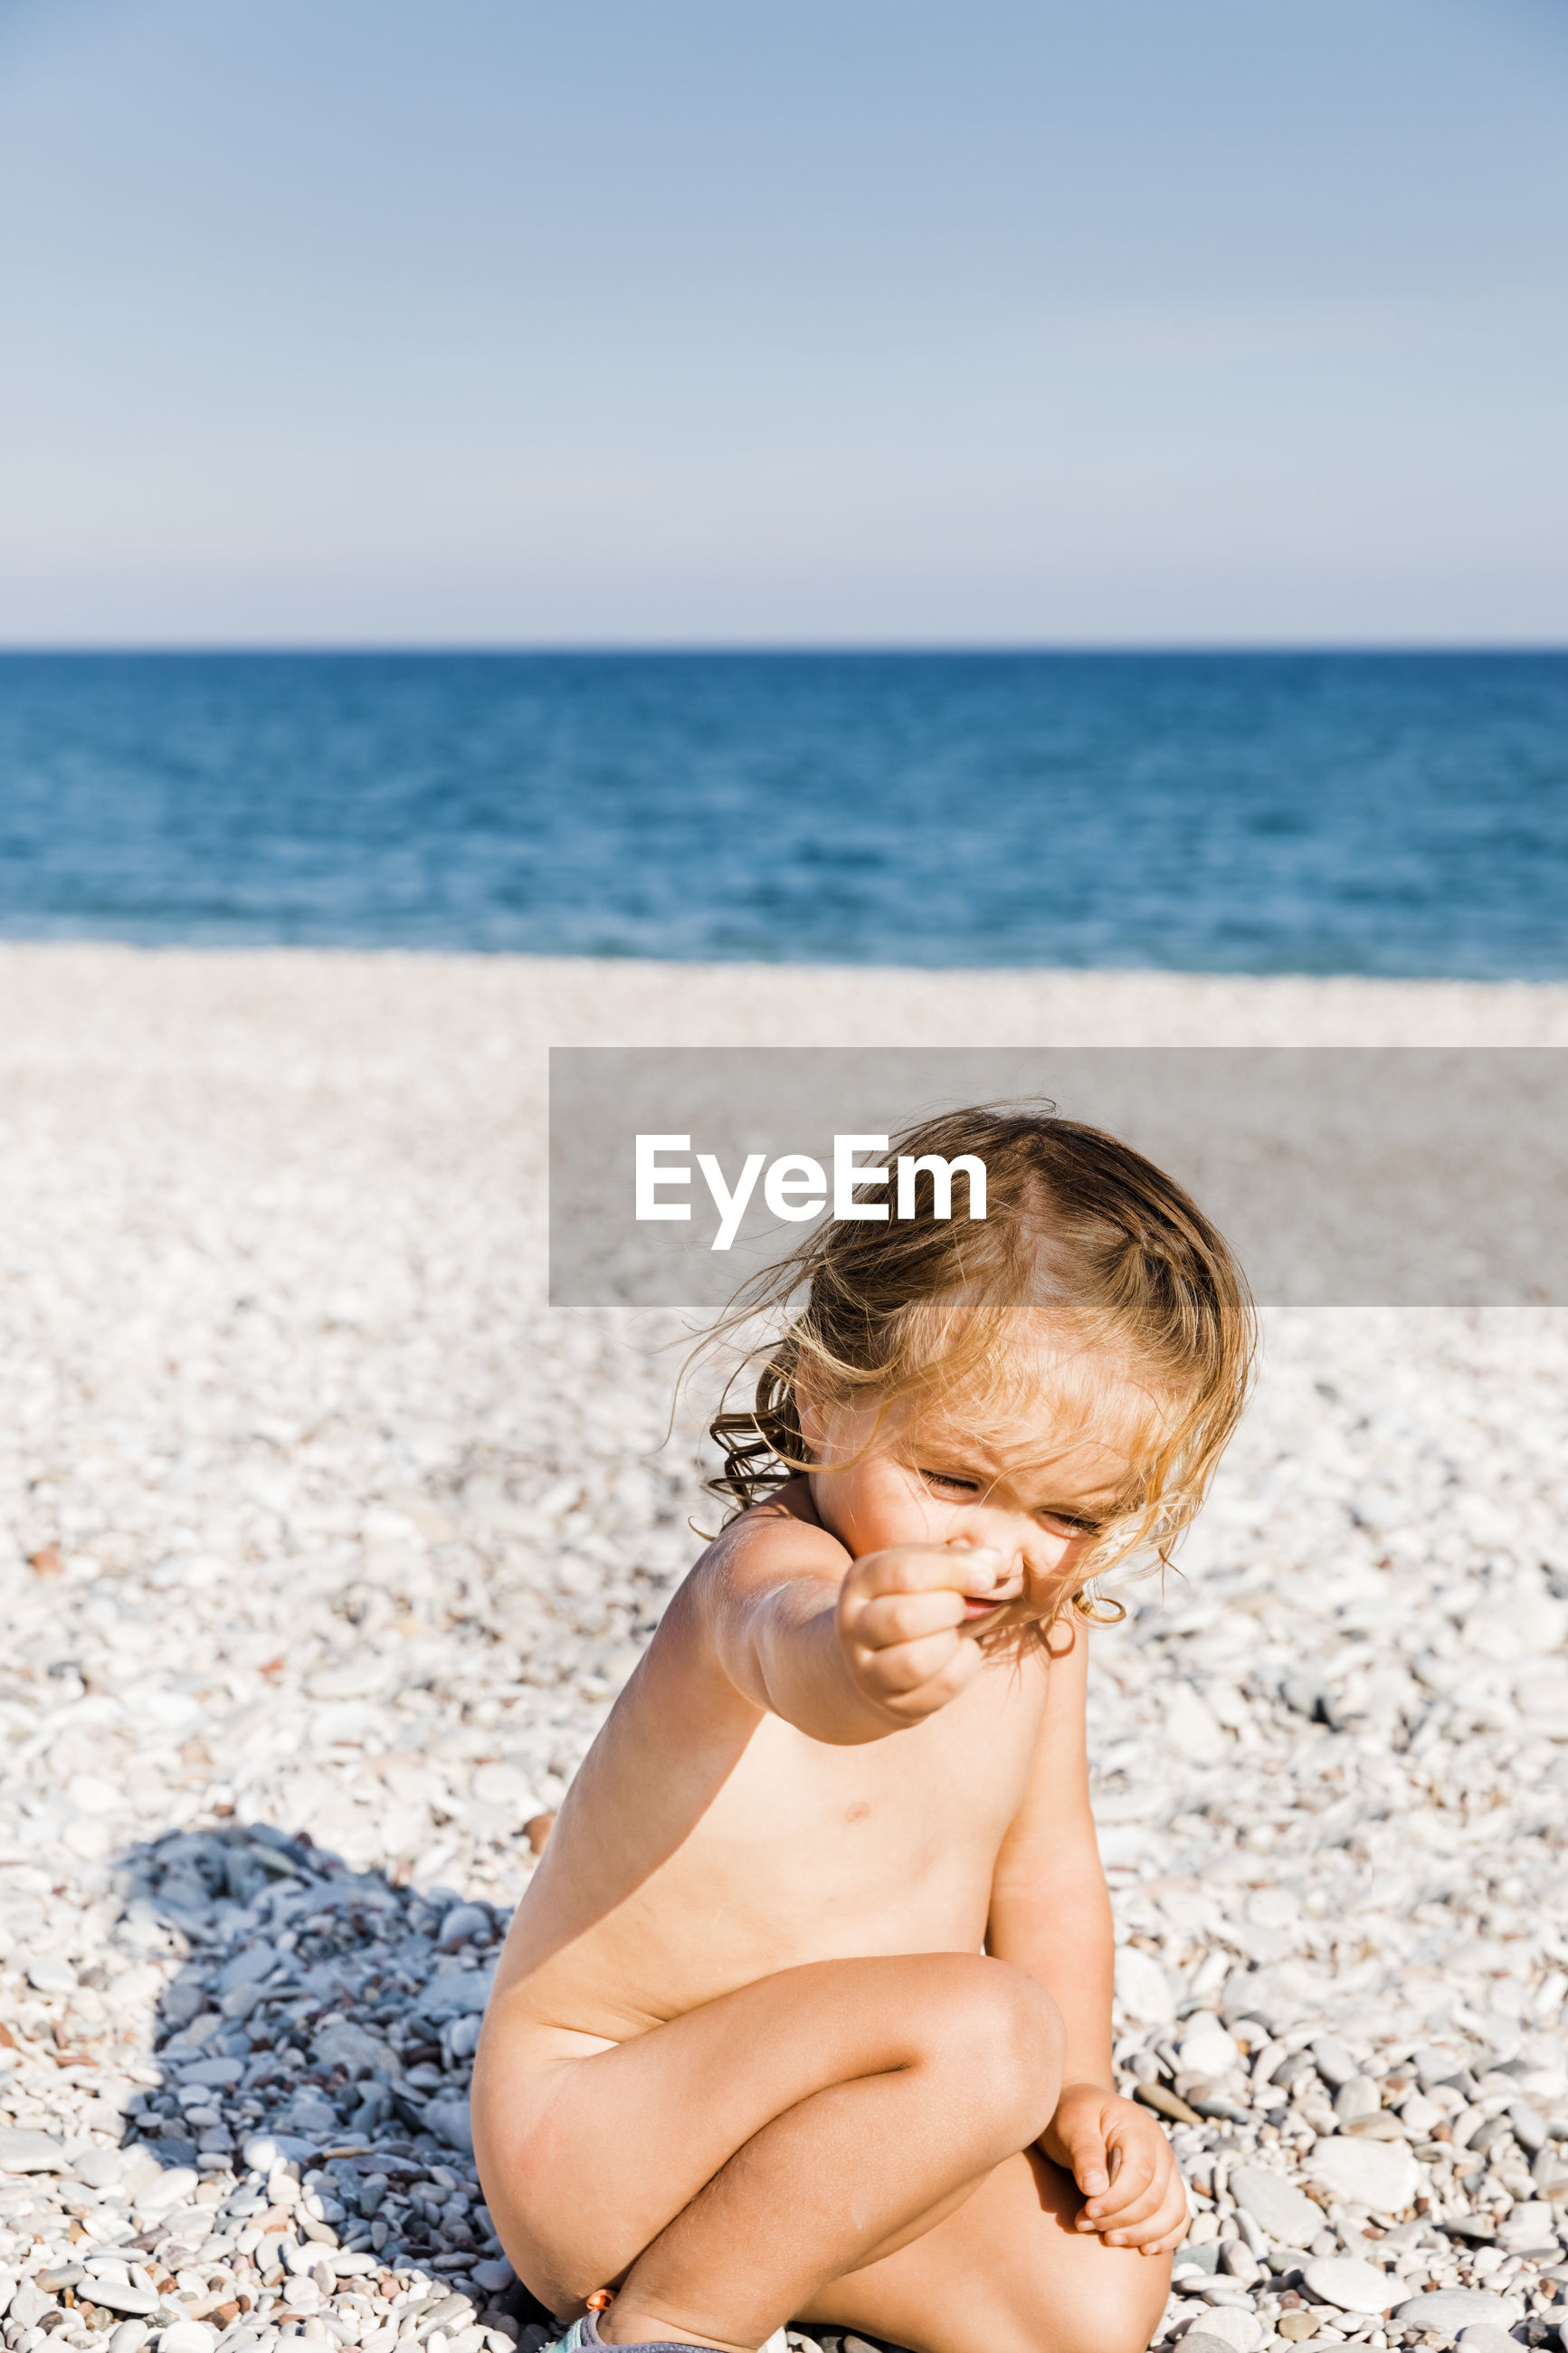 Naked girl crouching on rocks at beach during sunny day